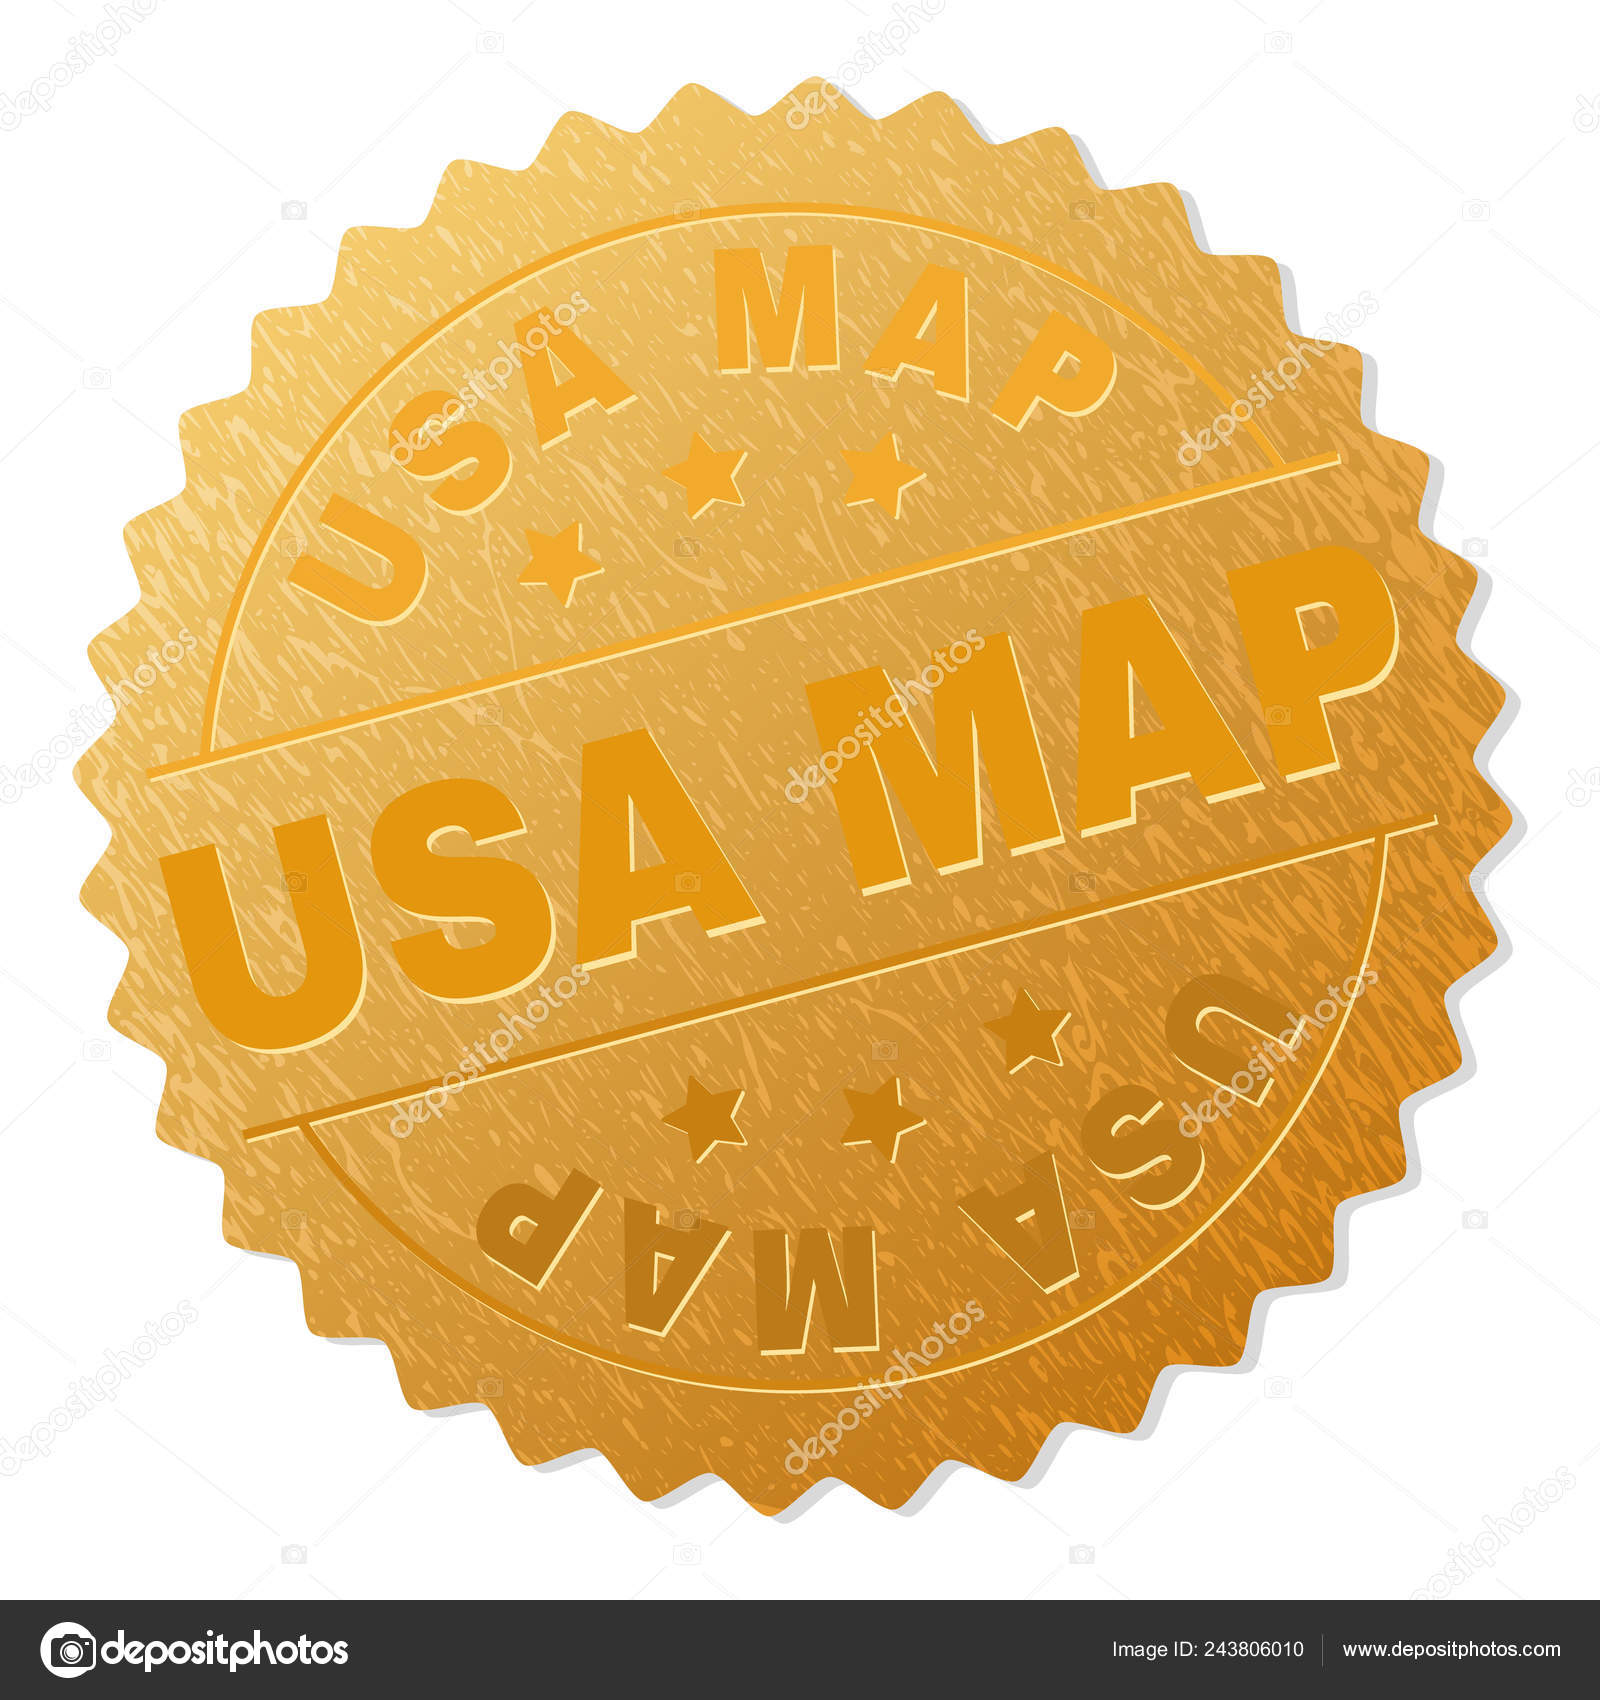 Gold USA MAP Badge Stamp — Stock Vector ... Gold In Usa Map on gold in vermont, gold in california, gold in puerto rico, gold in united states, gold in turkey, gold in pennsylvania, gold in north dakota, in the civil war states map, gold in indiana, copper mining in the united states, us mining map, gold mines in usa, virginia gold mining, gold mining in alaska, gold in arkansas, gold country, gold deposits in usa, landslide united state map, latin america map,